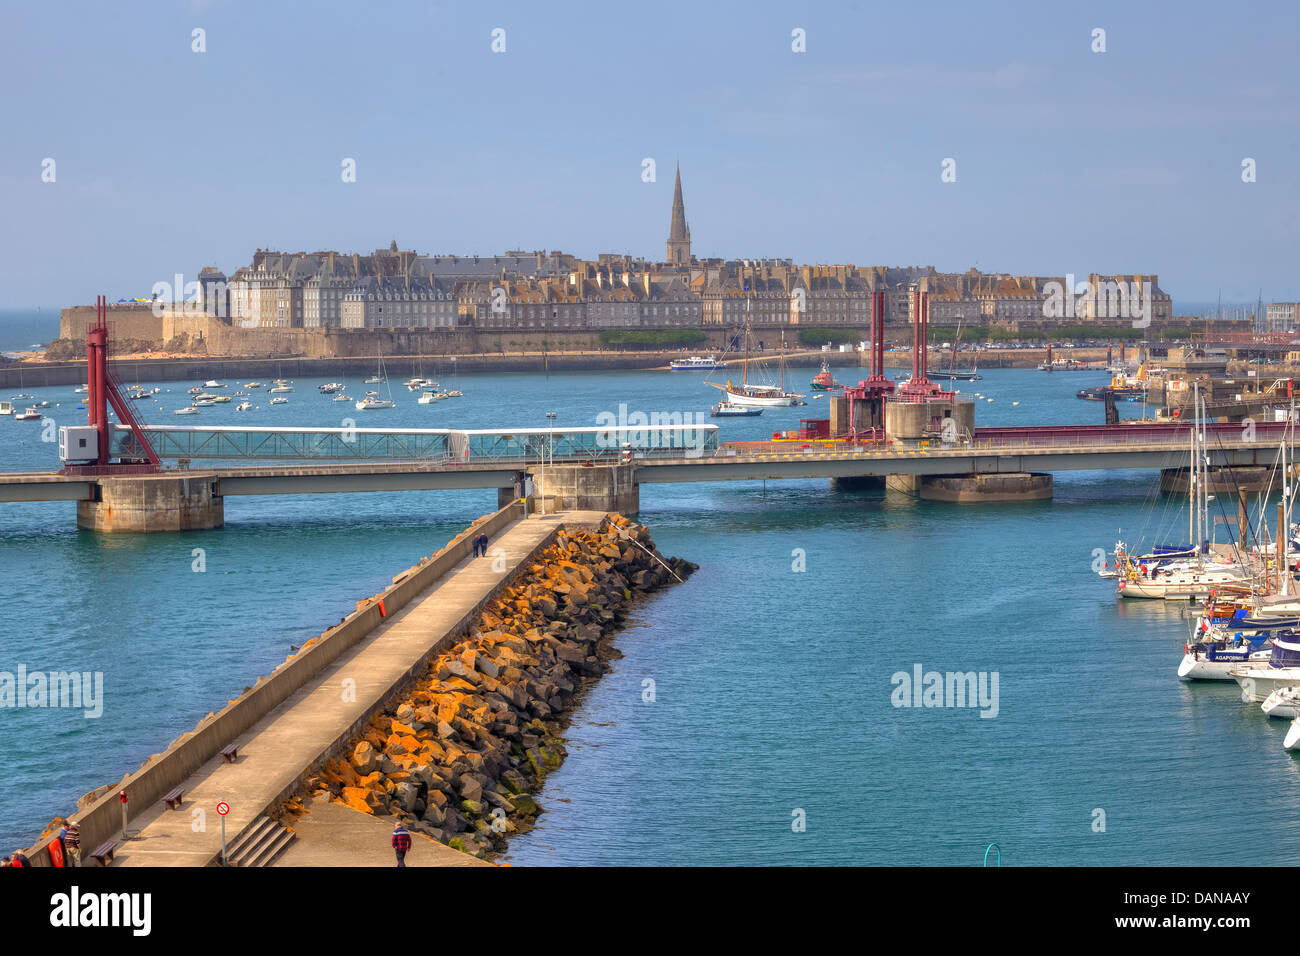 ferry terminal in Saint-Malo, Brittany, France - Stock Image